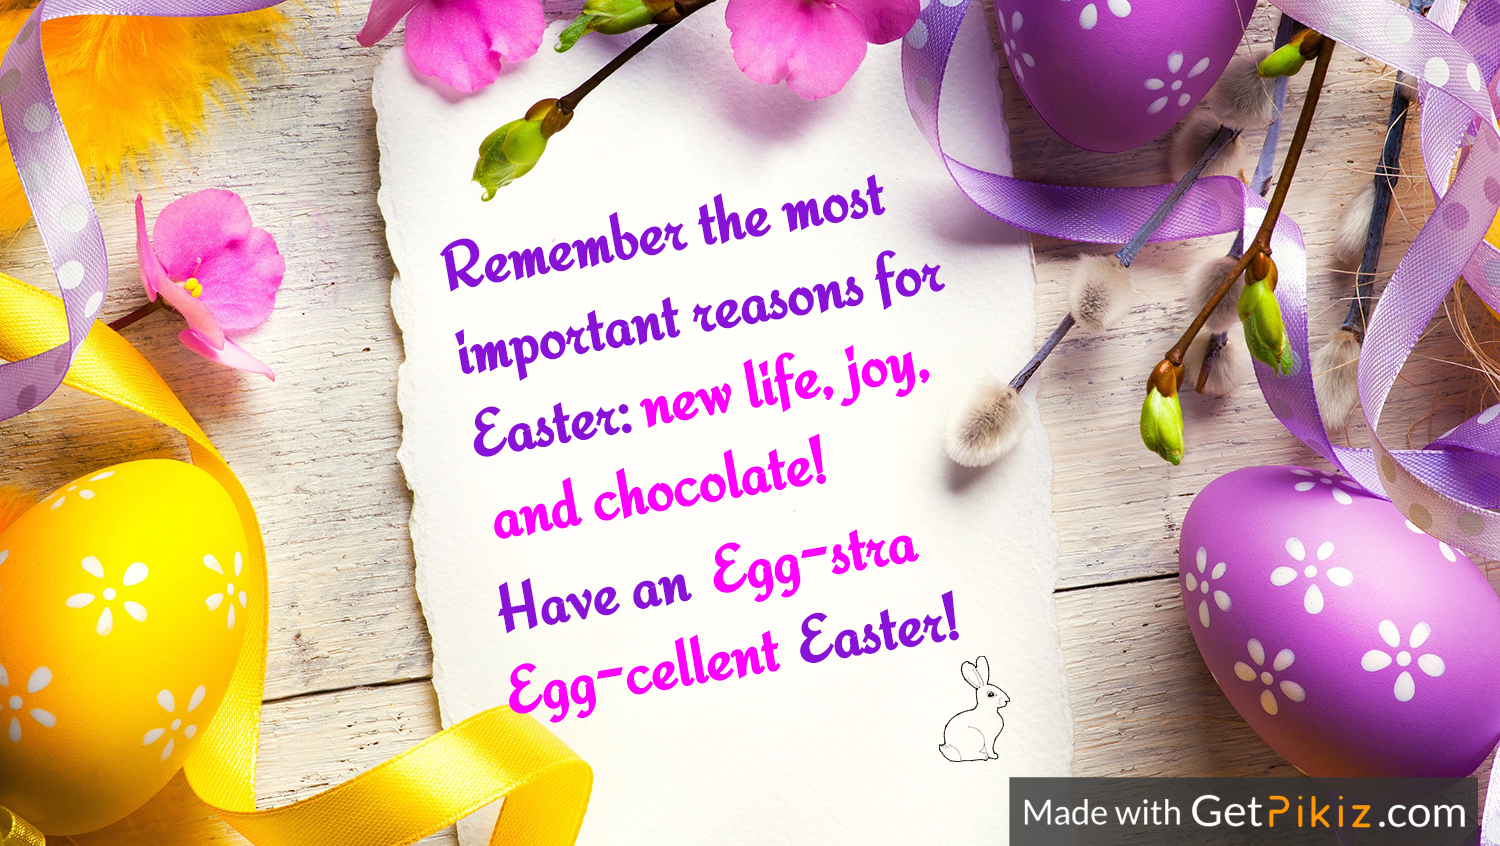 Remember the most important reasons for Easter:                    Egg-stra Egg-cellent  Have an             new life, joy, and chocolate! Easter!